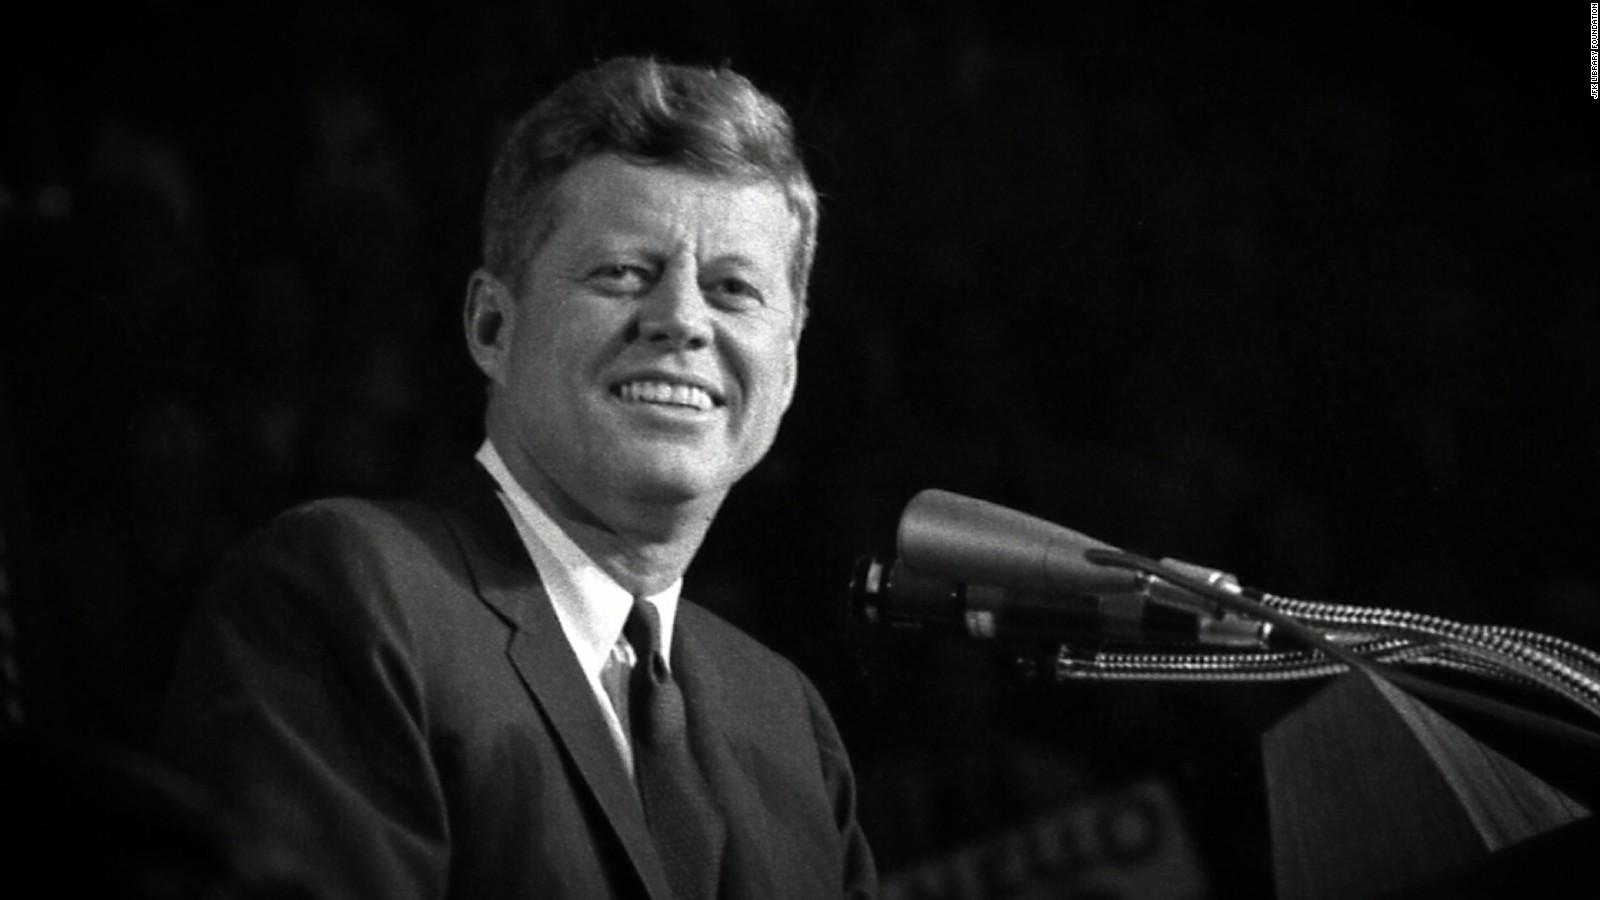 caroline kennedy on jfk i miss him every day cnnpolitics